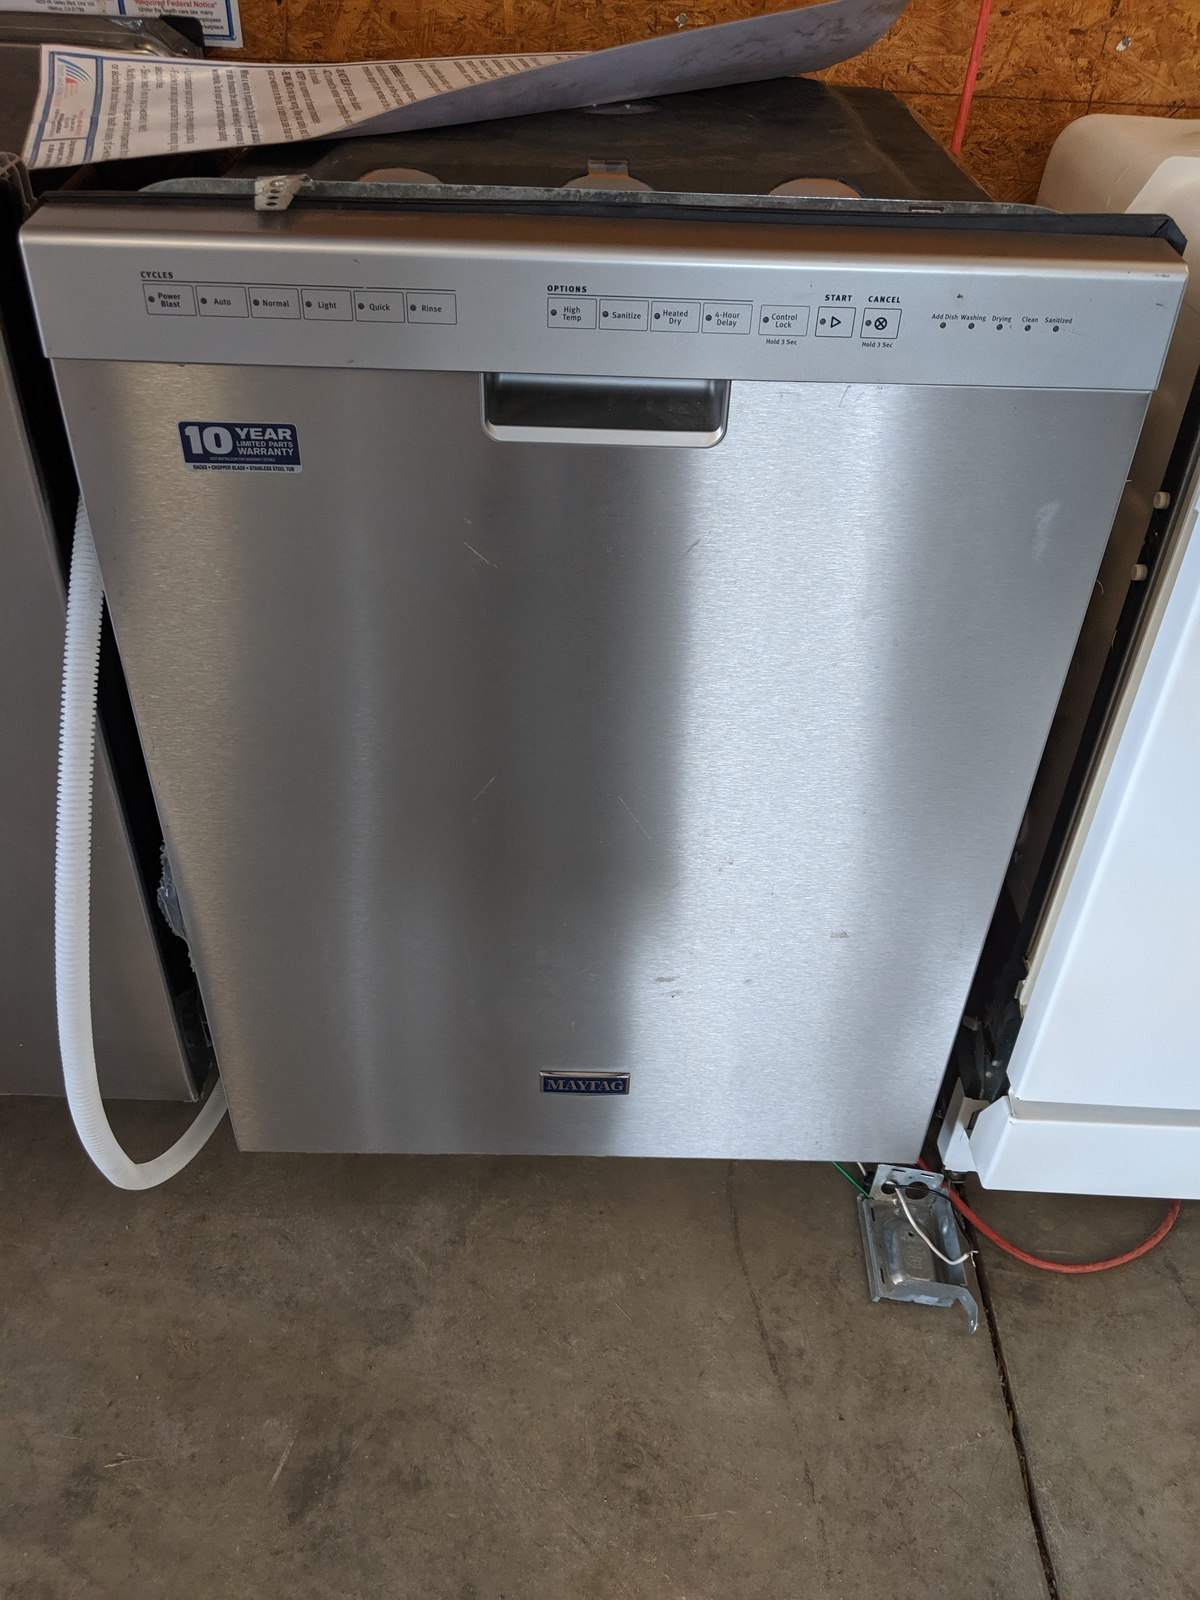 New Maytag 50 Decibel Hard Food Disposer Built In Dishwasher Fingerprint Resistant Stainless Steel Nothing S Perfect Appliances And More